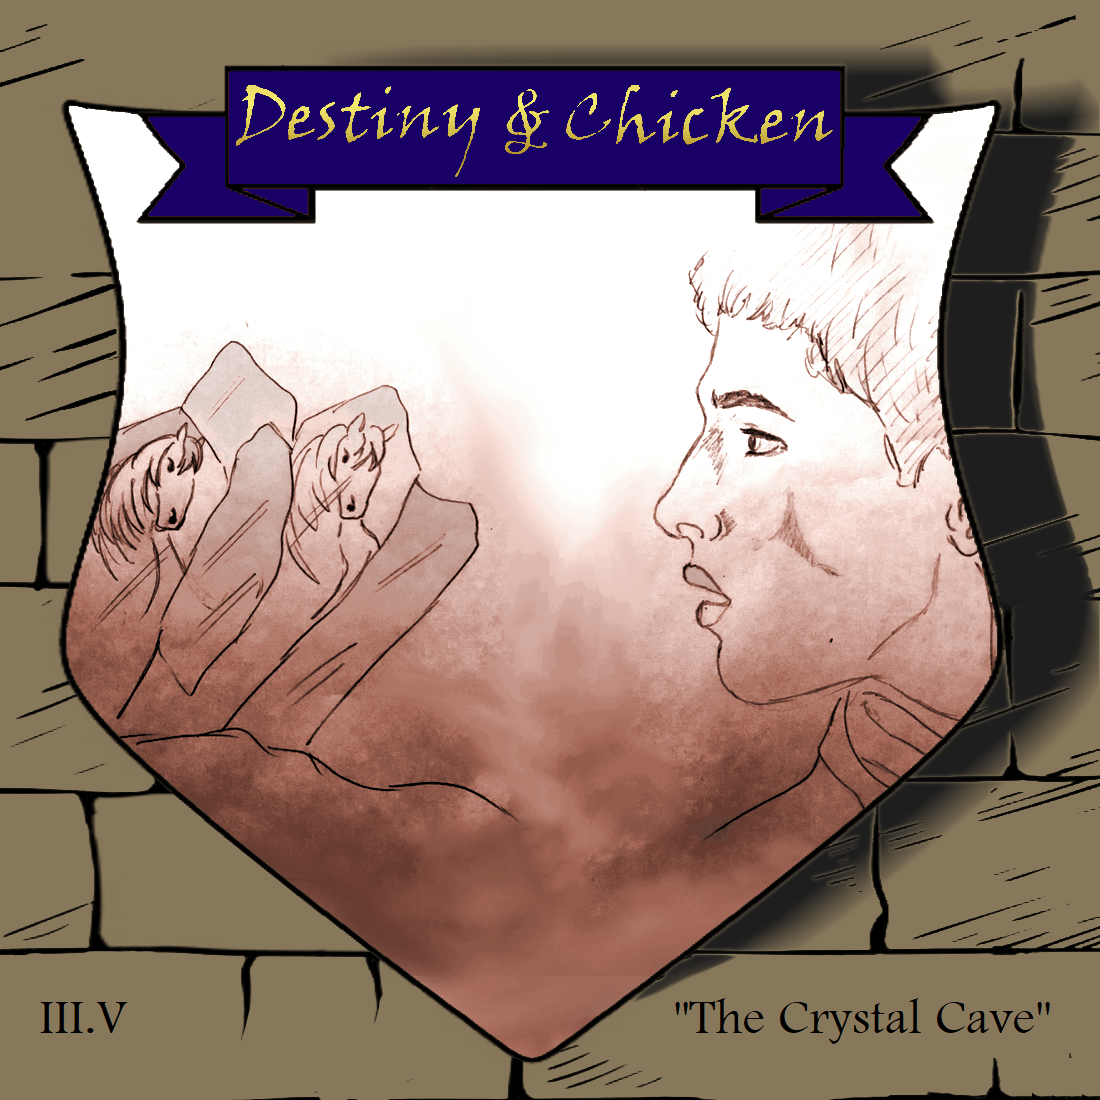 Episode III.V - The Crystal Cave